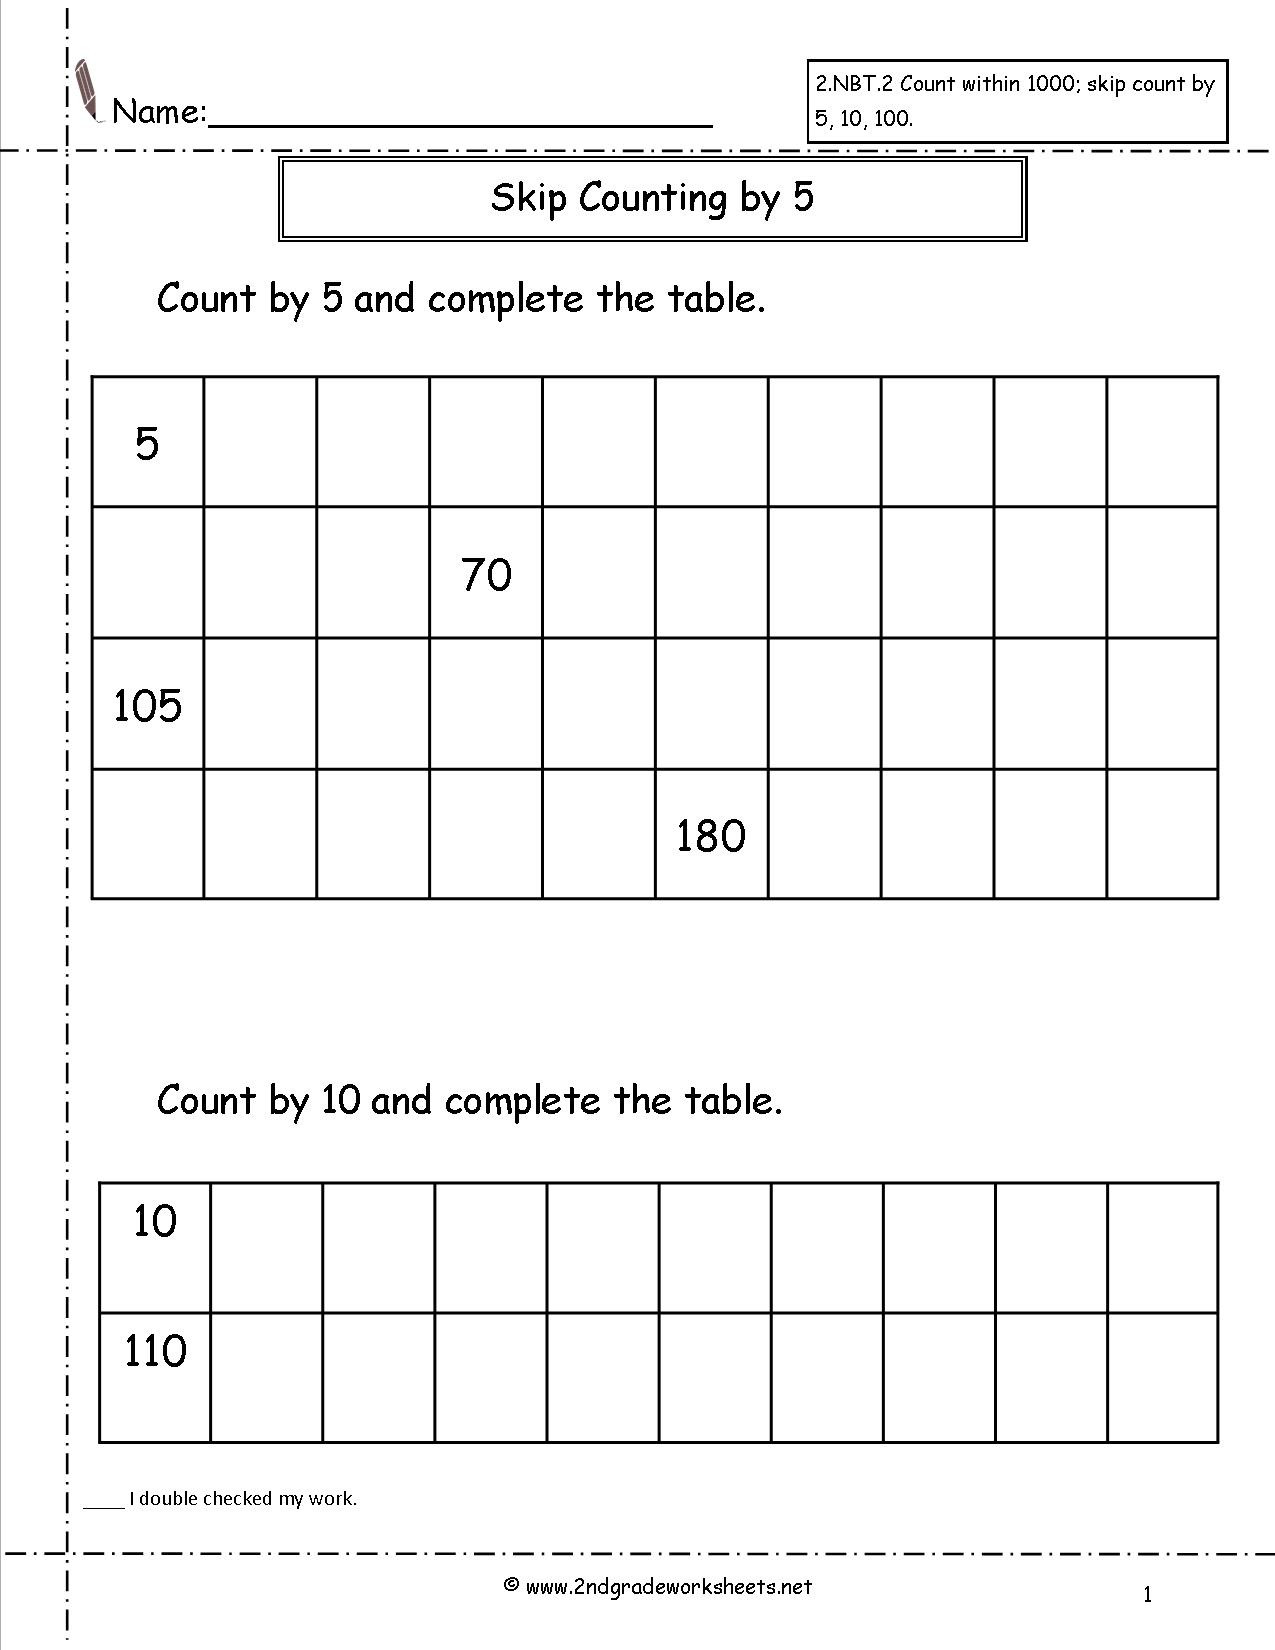 Skip Counting Worksheets 3rd Grade Fun is Fun Printable Two Digit Addition Worksheets Skip